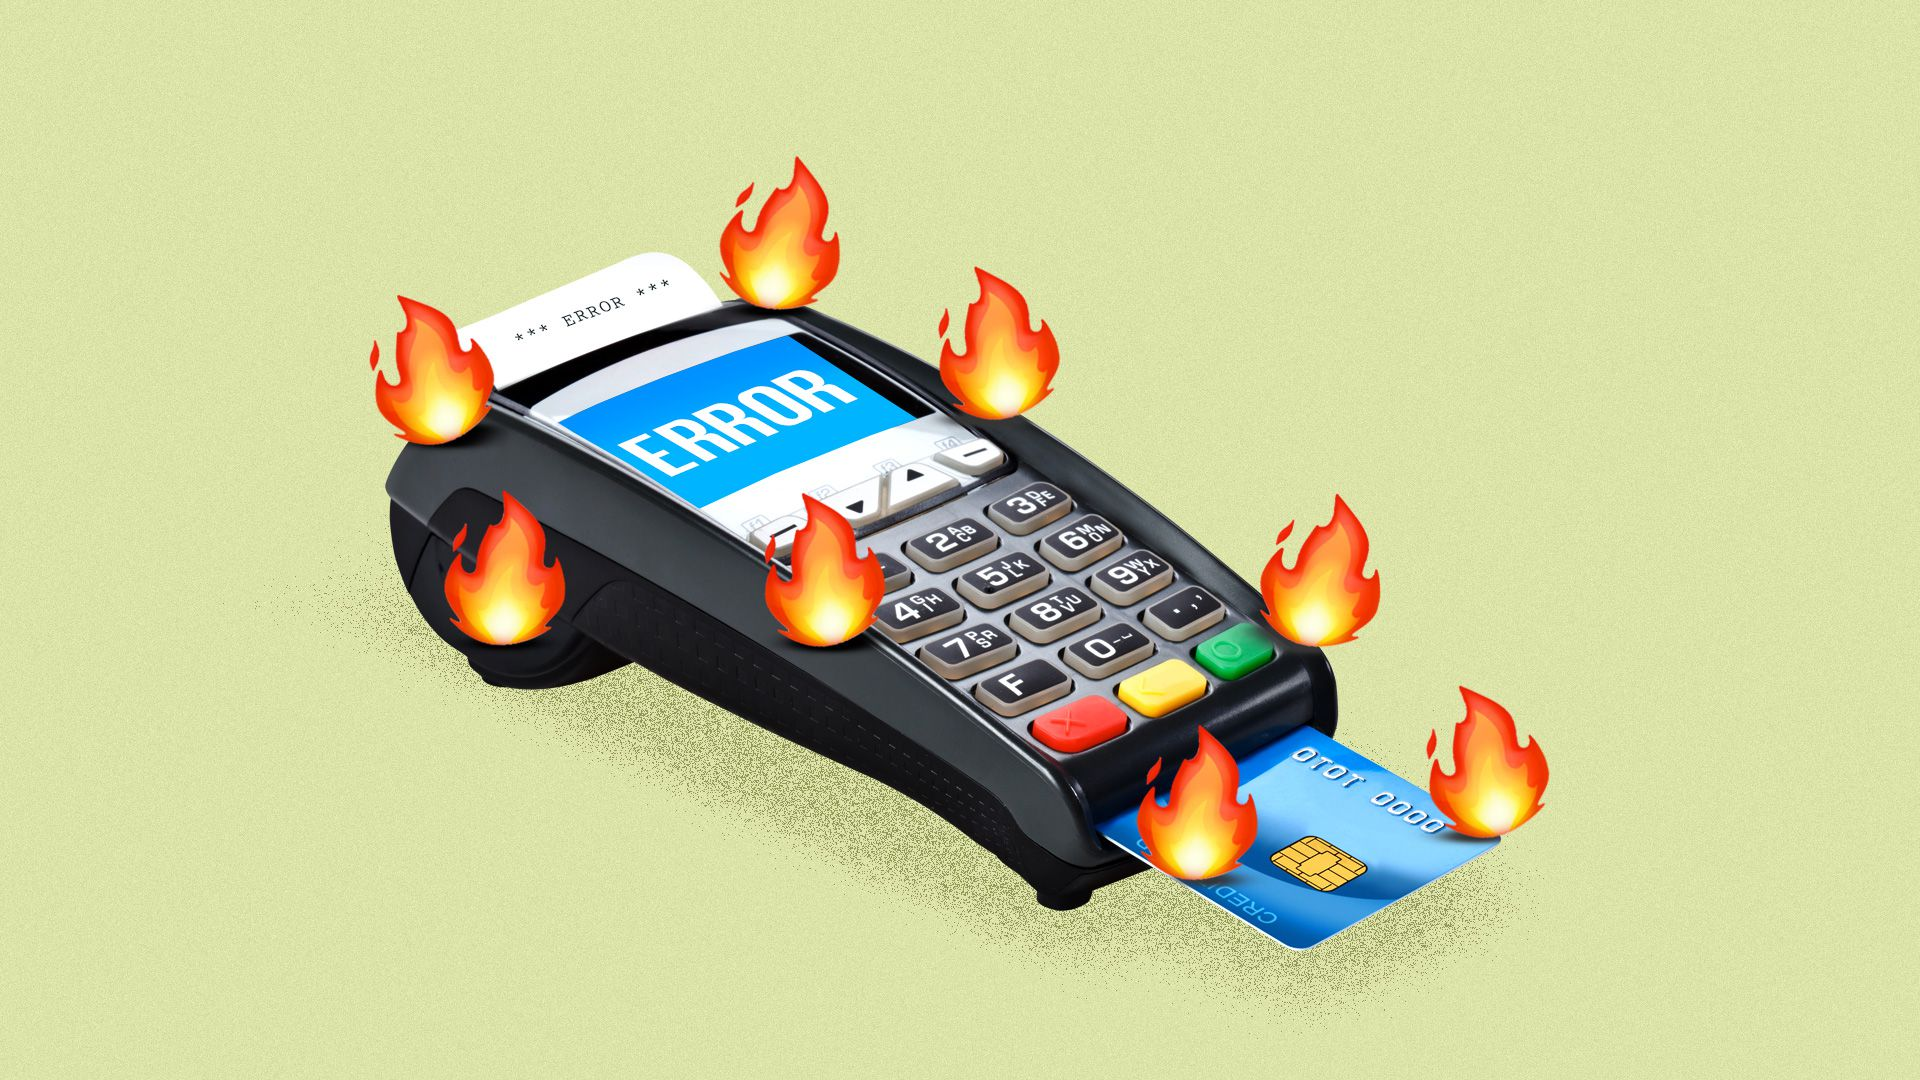 A credit card machine catching on fire